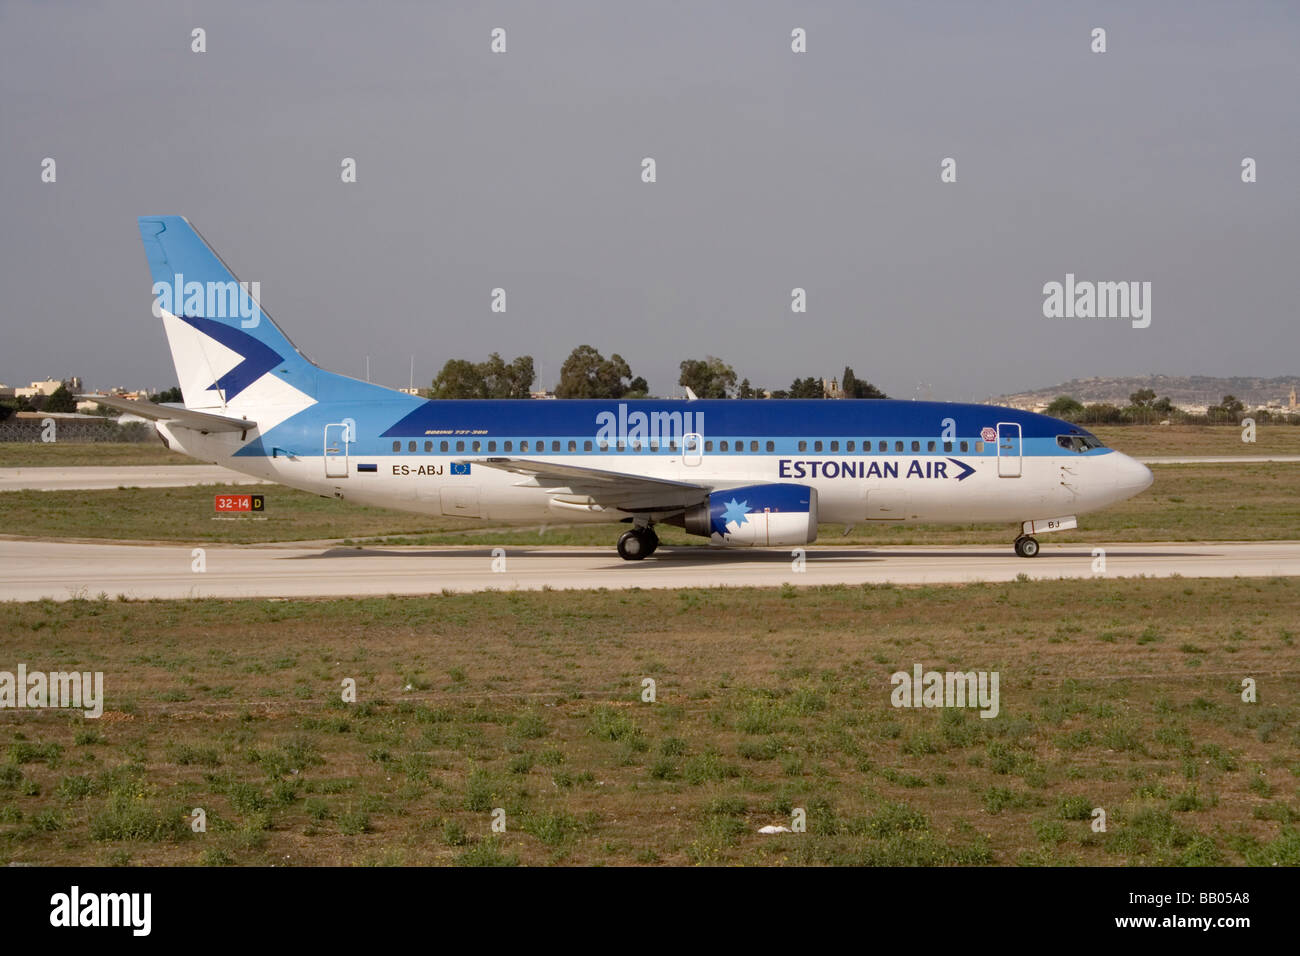 Estonian Air Boeing 737-300 passenger jet aeroplane taxiing on arrival in Malta. Commercial aviation in the EU. - Stock Image